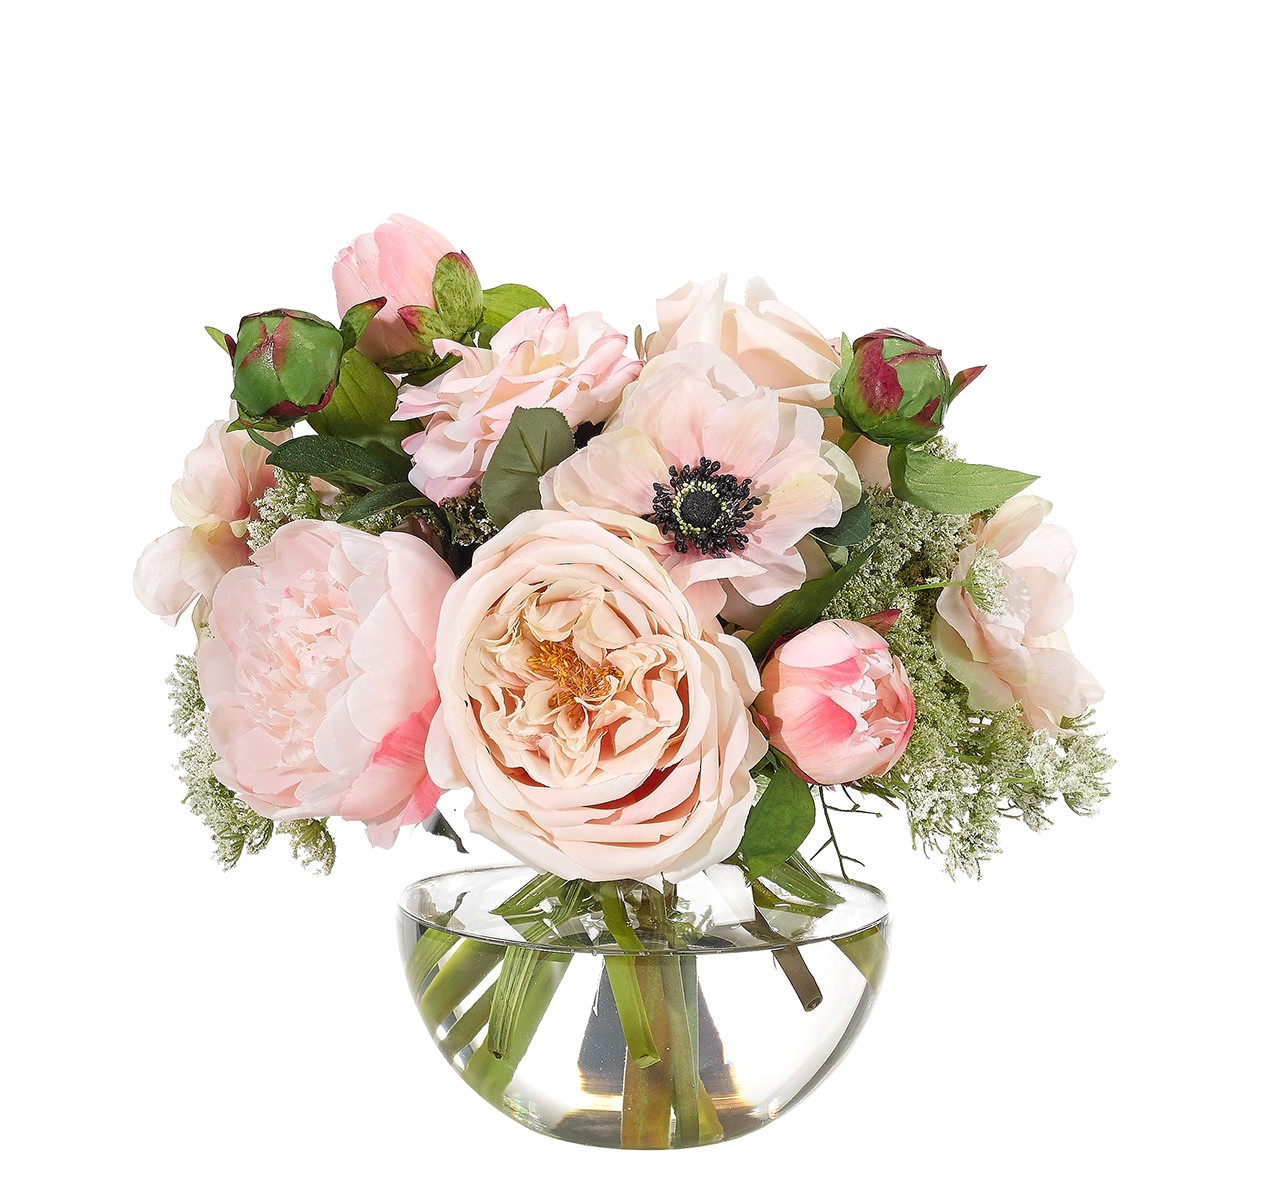 Small Glass Vase Flower Arrangements Of Ndi Faux Florals and Botanicals with Custom orders